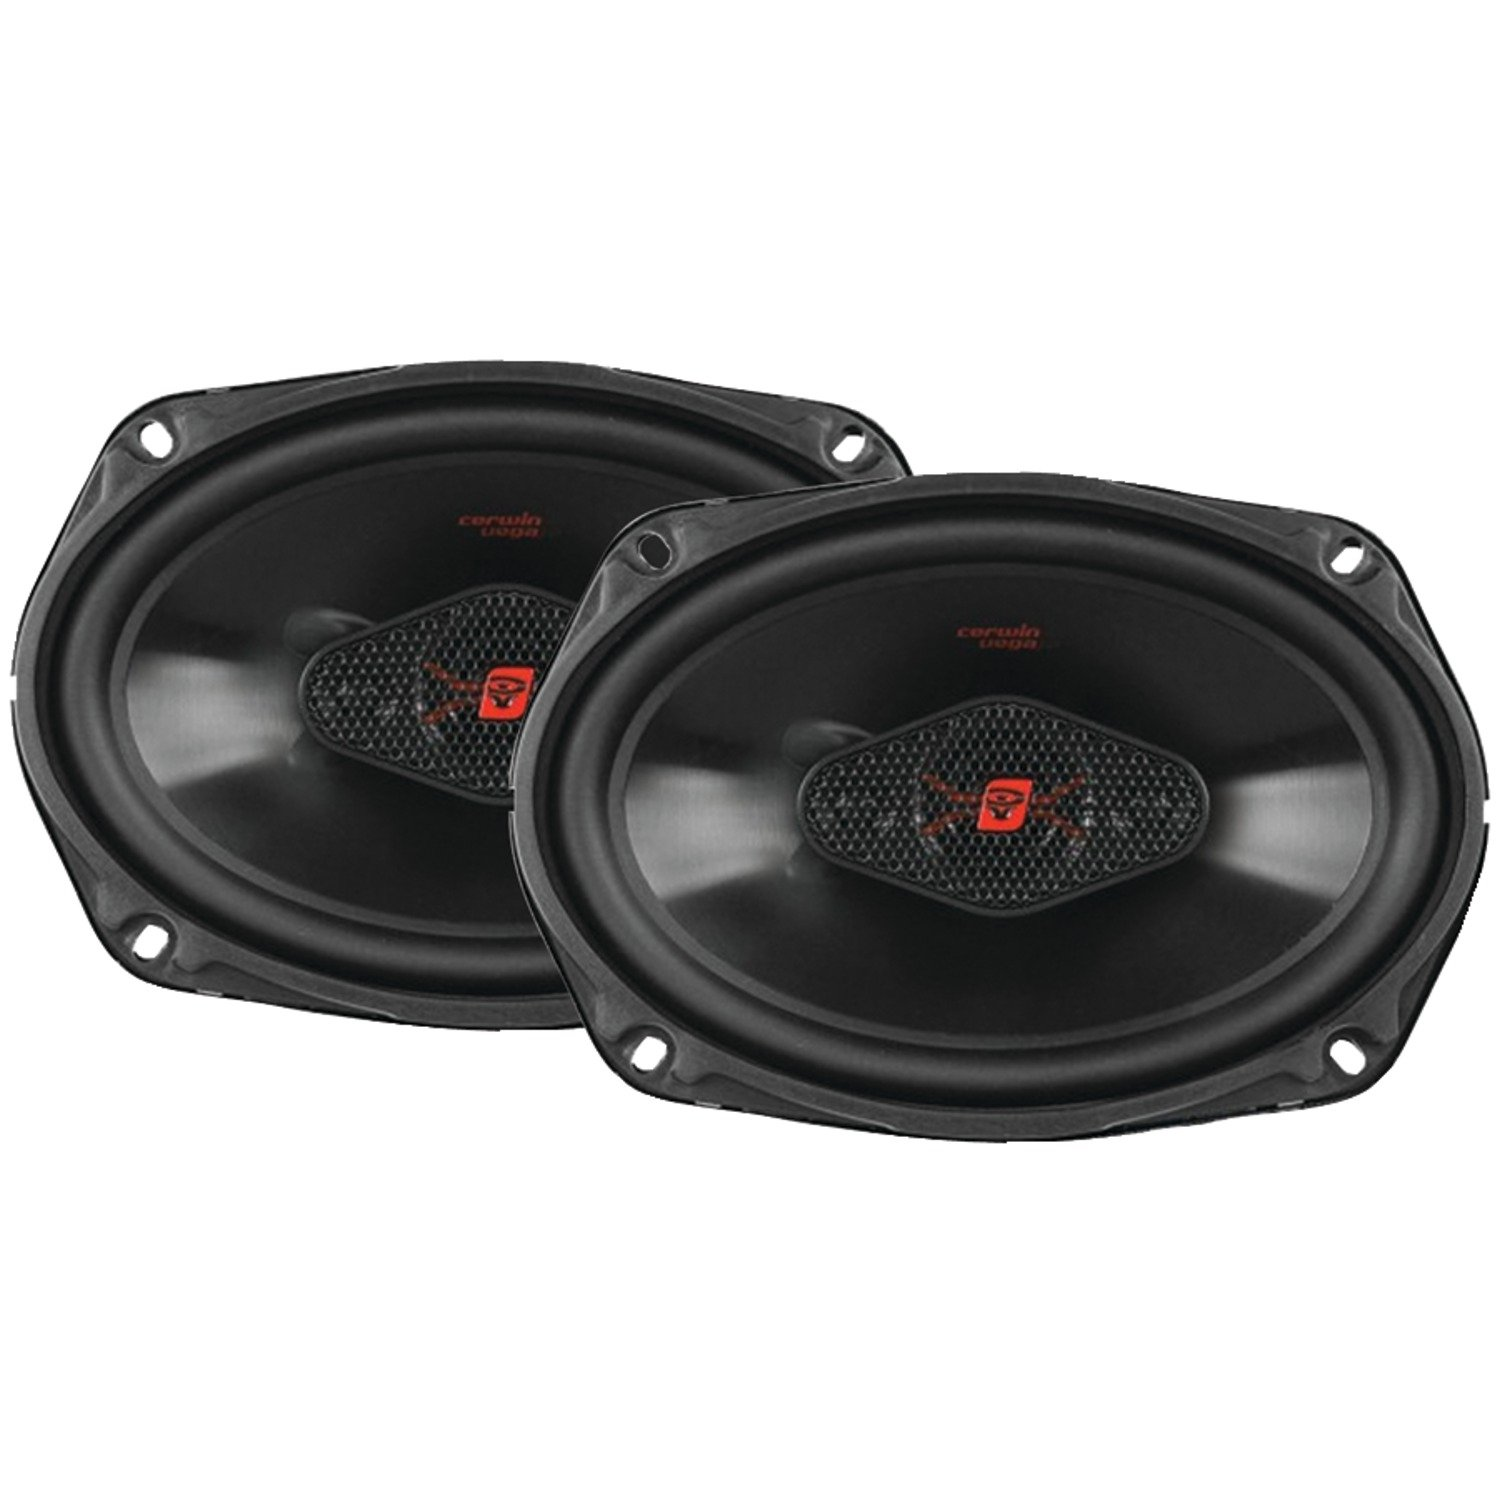 CERWIN VEGA H4694 HED 6-Inch x 9-Inch 440 Watts Max//65Watts RMS Power Handling 4-Way Coaxial Speaker Set